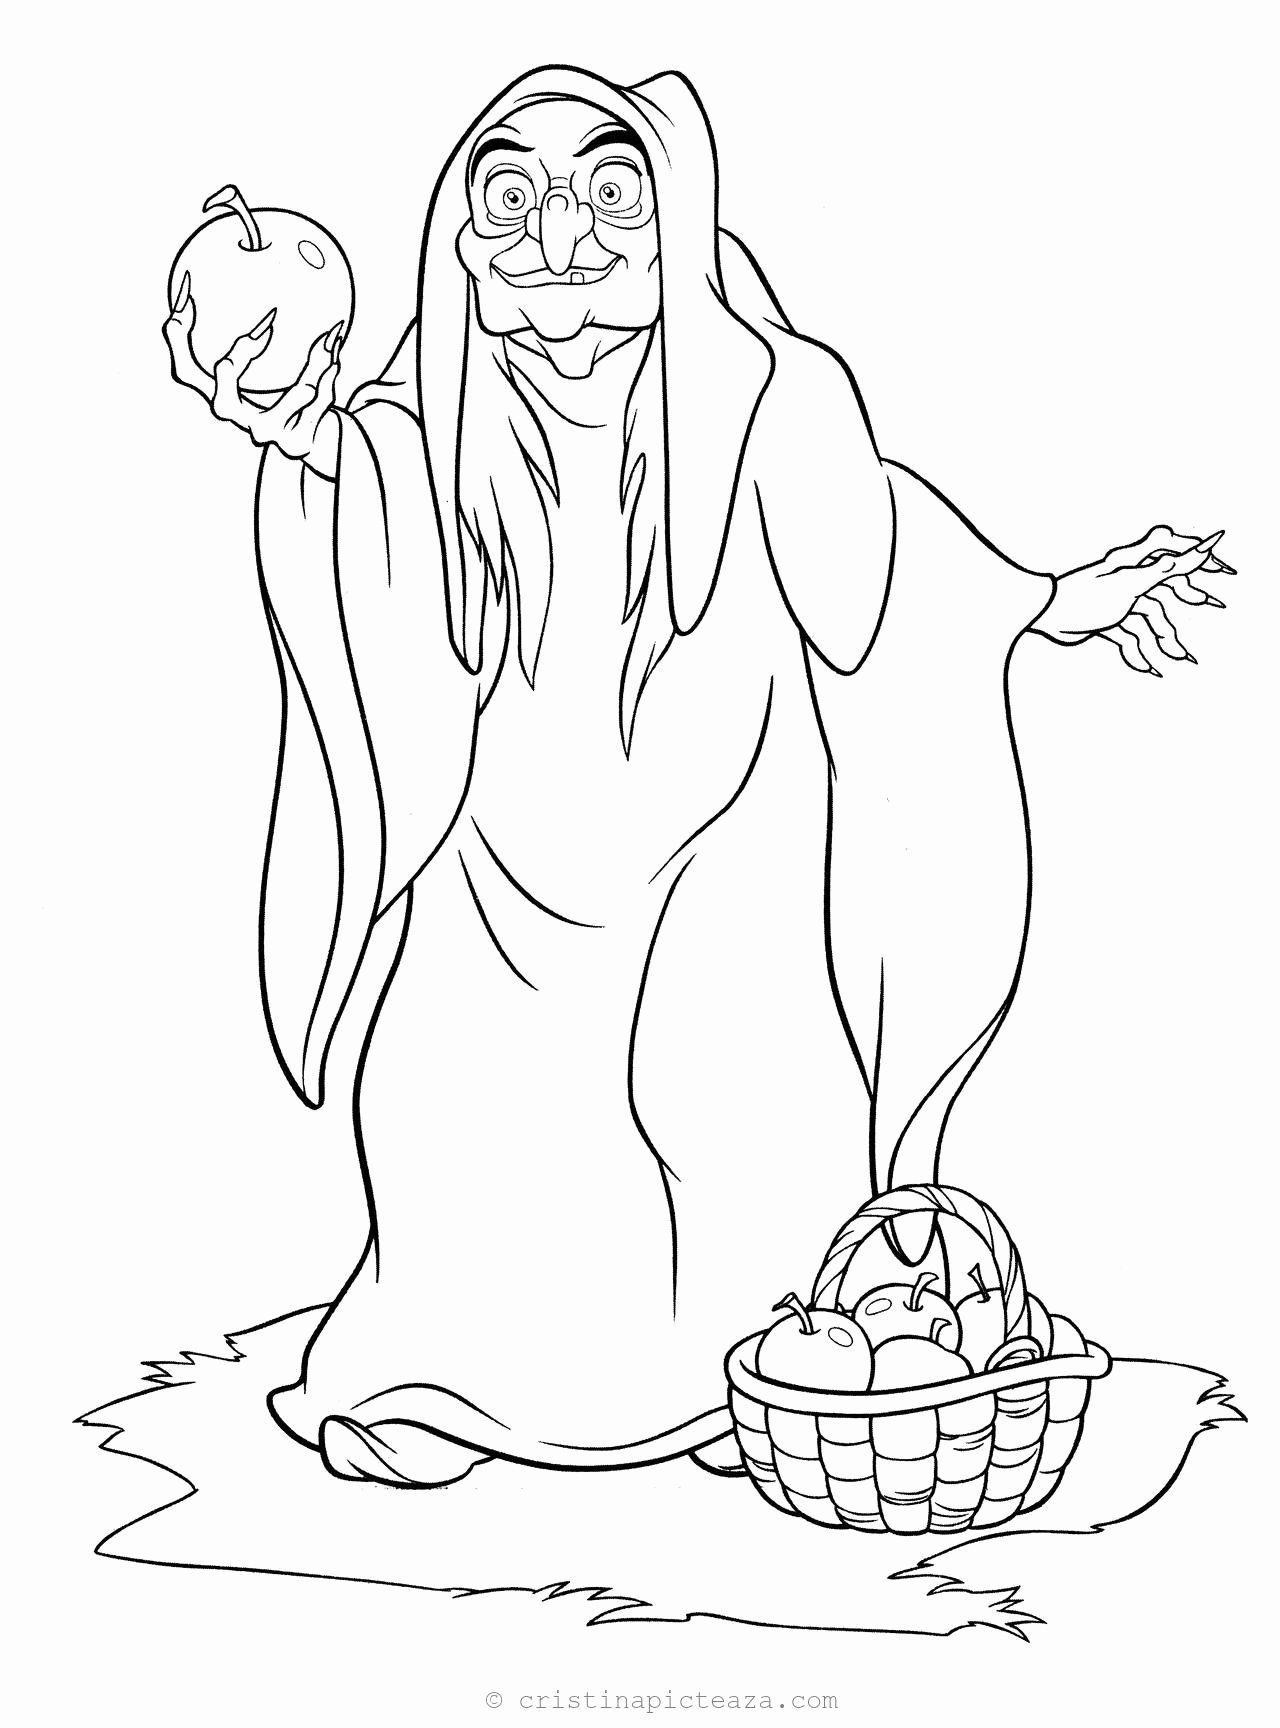 Snow White Coloring Sheets Awesome Snow White Coloring Pages For Download Cristina Picteaz In 2020 Witch Coloring Pages Disney Coloring Pages Snow White Coloring Pages